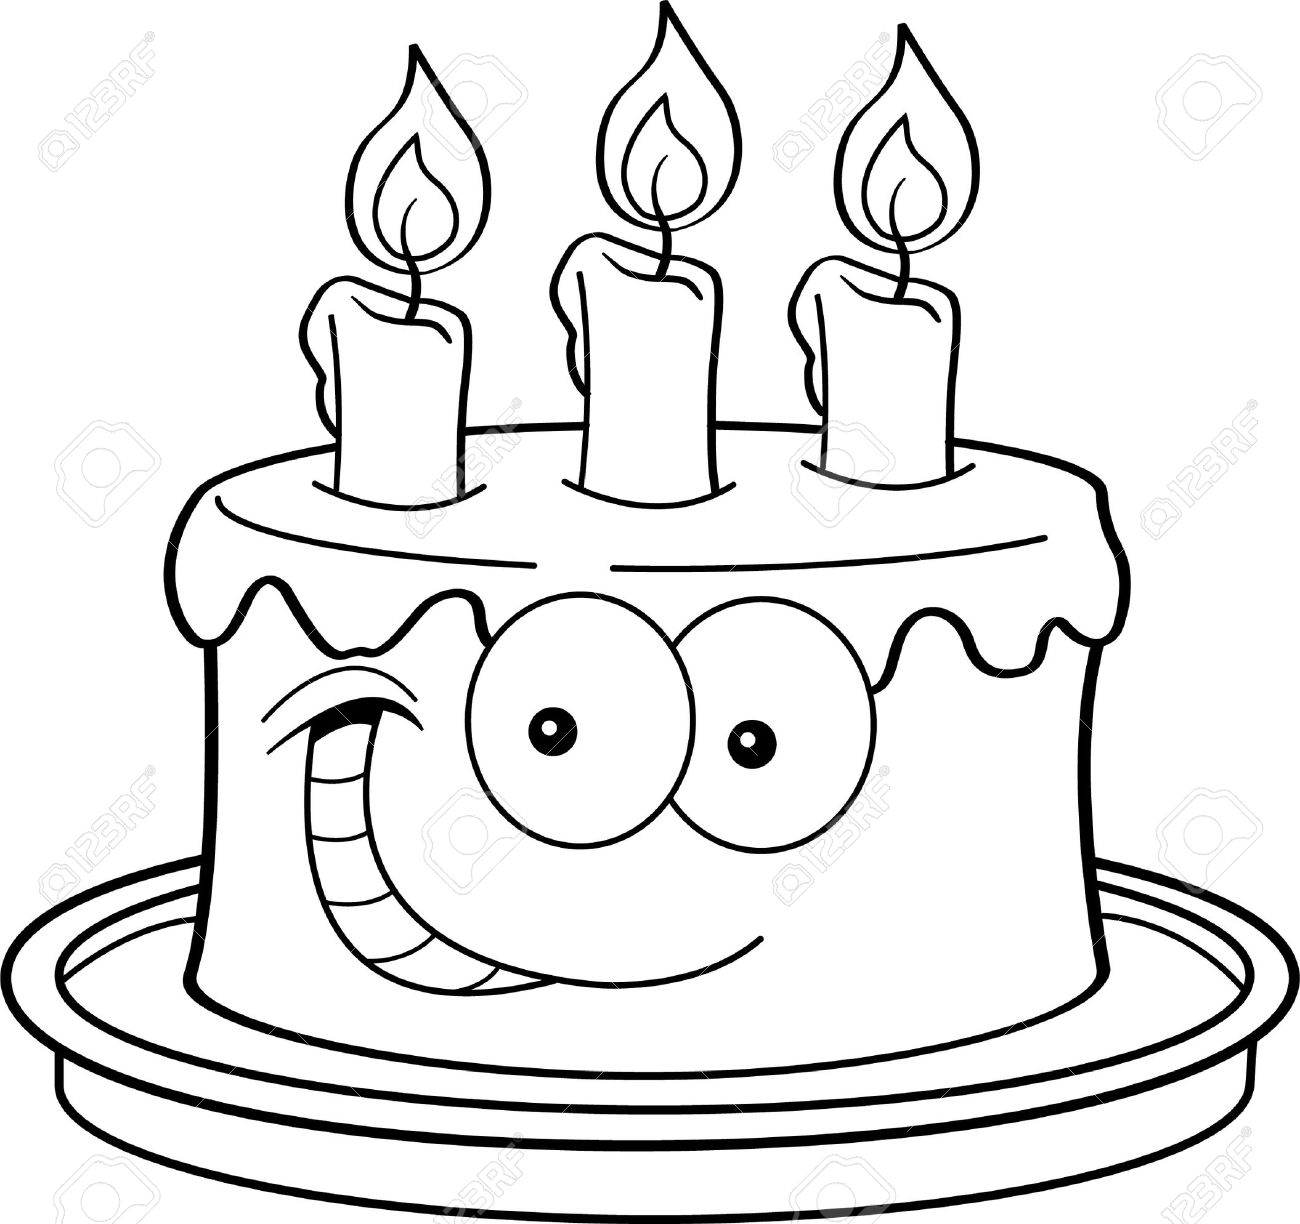 Black And White Illustration Of A Cake With Candles